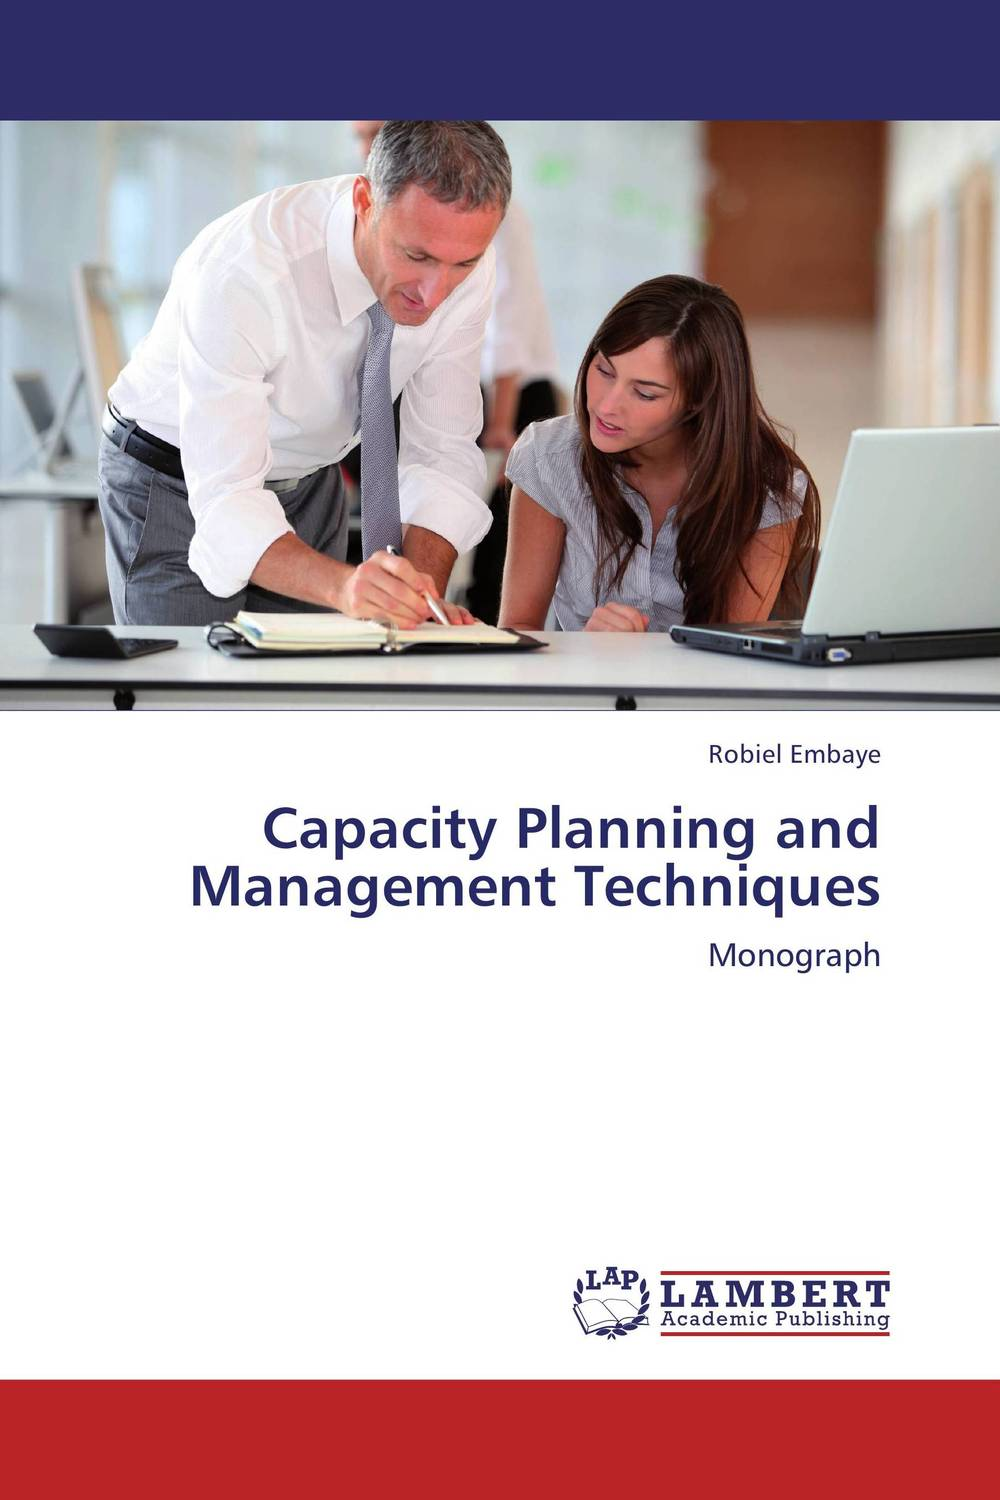 Capacity Planning and Management Techniques statistical techniques for family planning measures